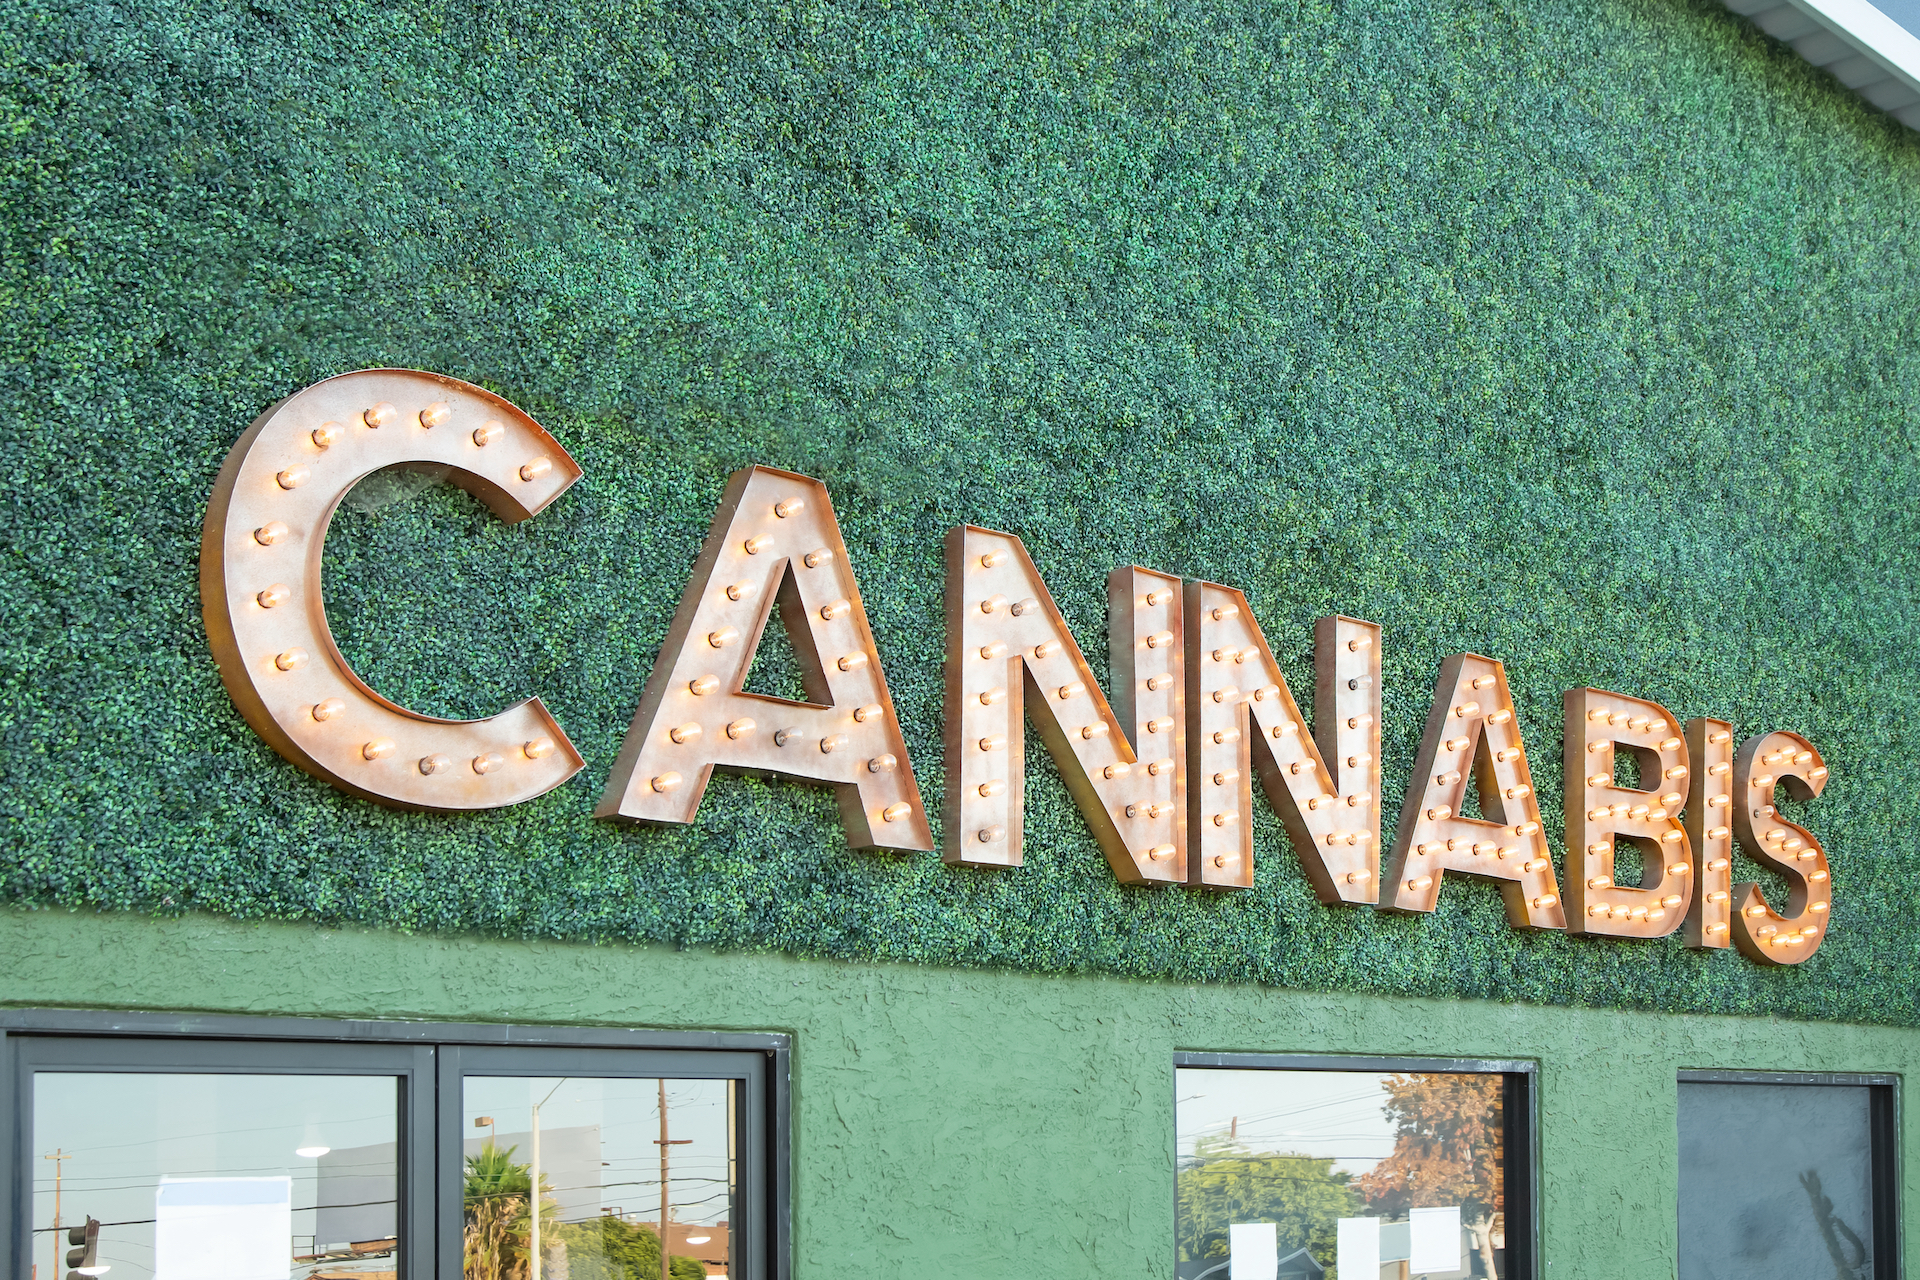 Higher Yields Consulting Cannabis Licensing: The True Cost of Your Application